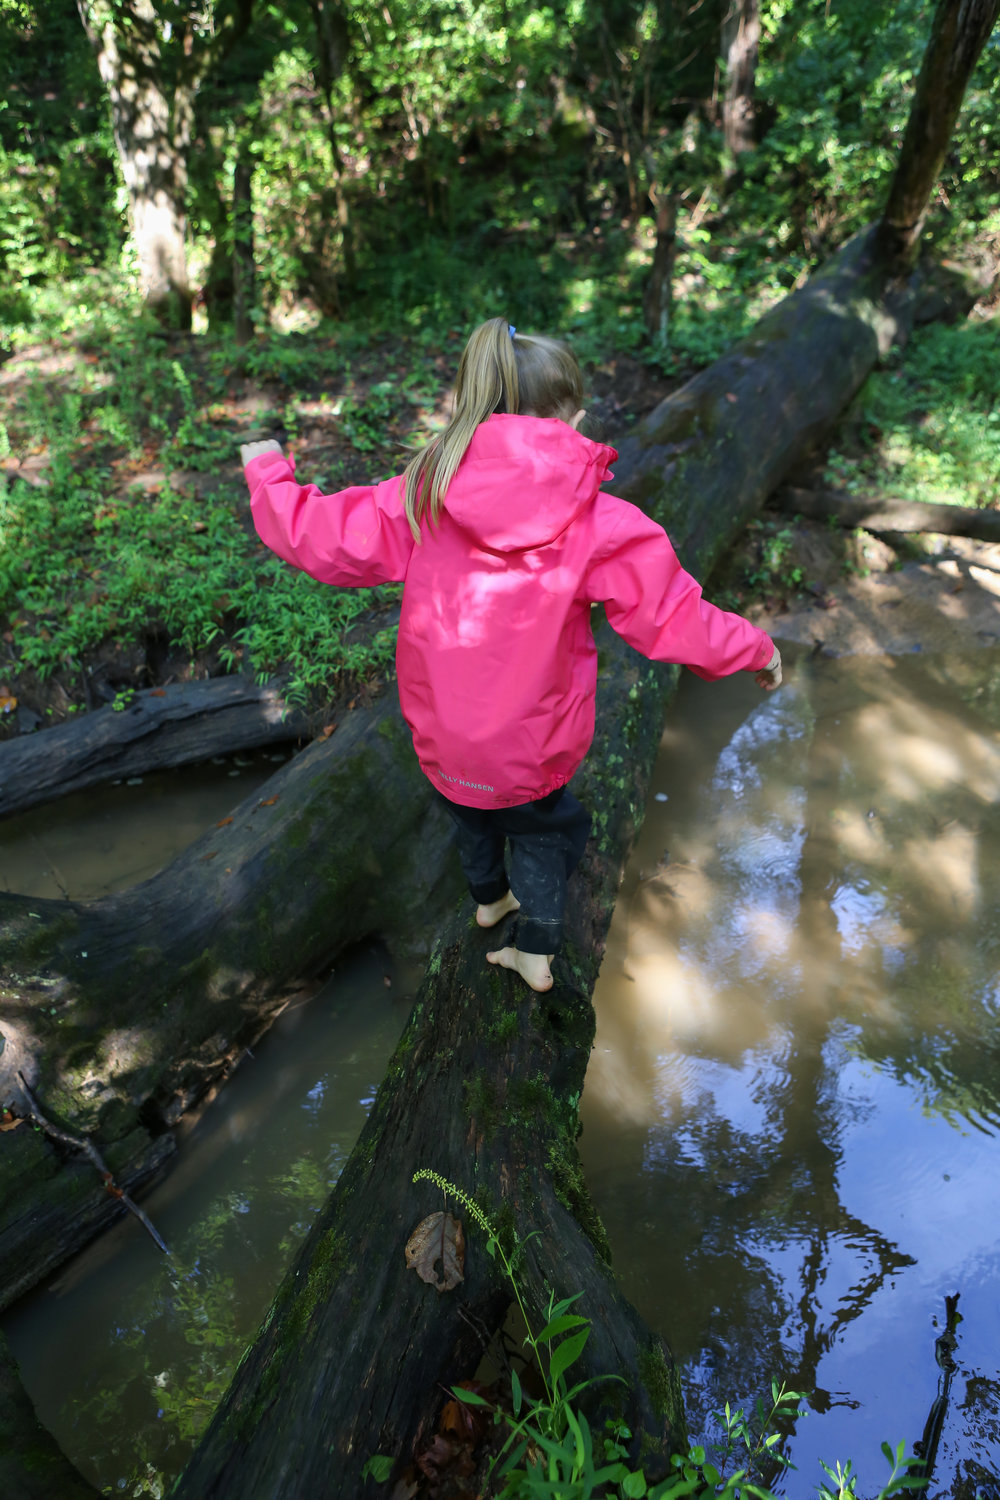 One of our kids tries her balance across a log across a stream. One of the hallmarks of forest school is risk assessment. This instills courage and learning naturally what our bodies can and cannot do. It also instills true confidence that is in balance with real situations.